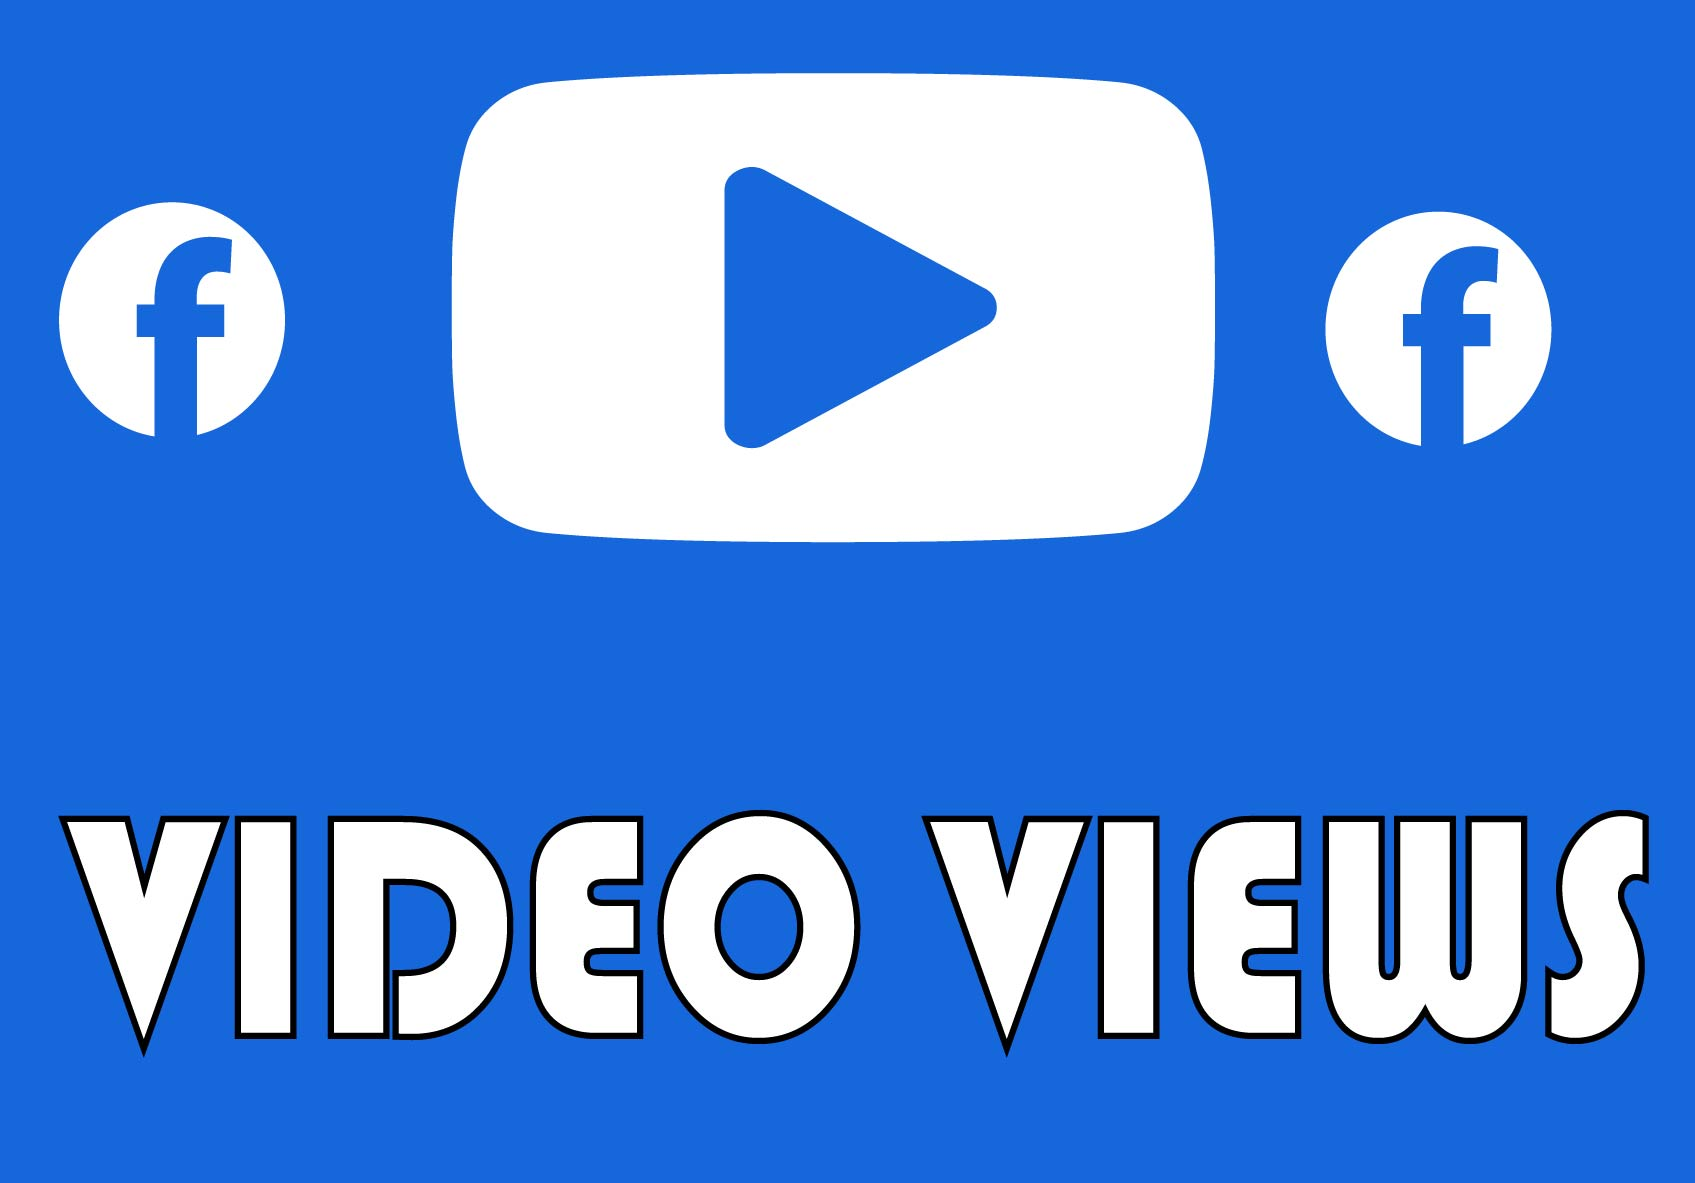 Add 50,000 FB VIDEO VIEWS